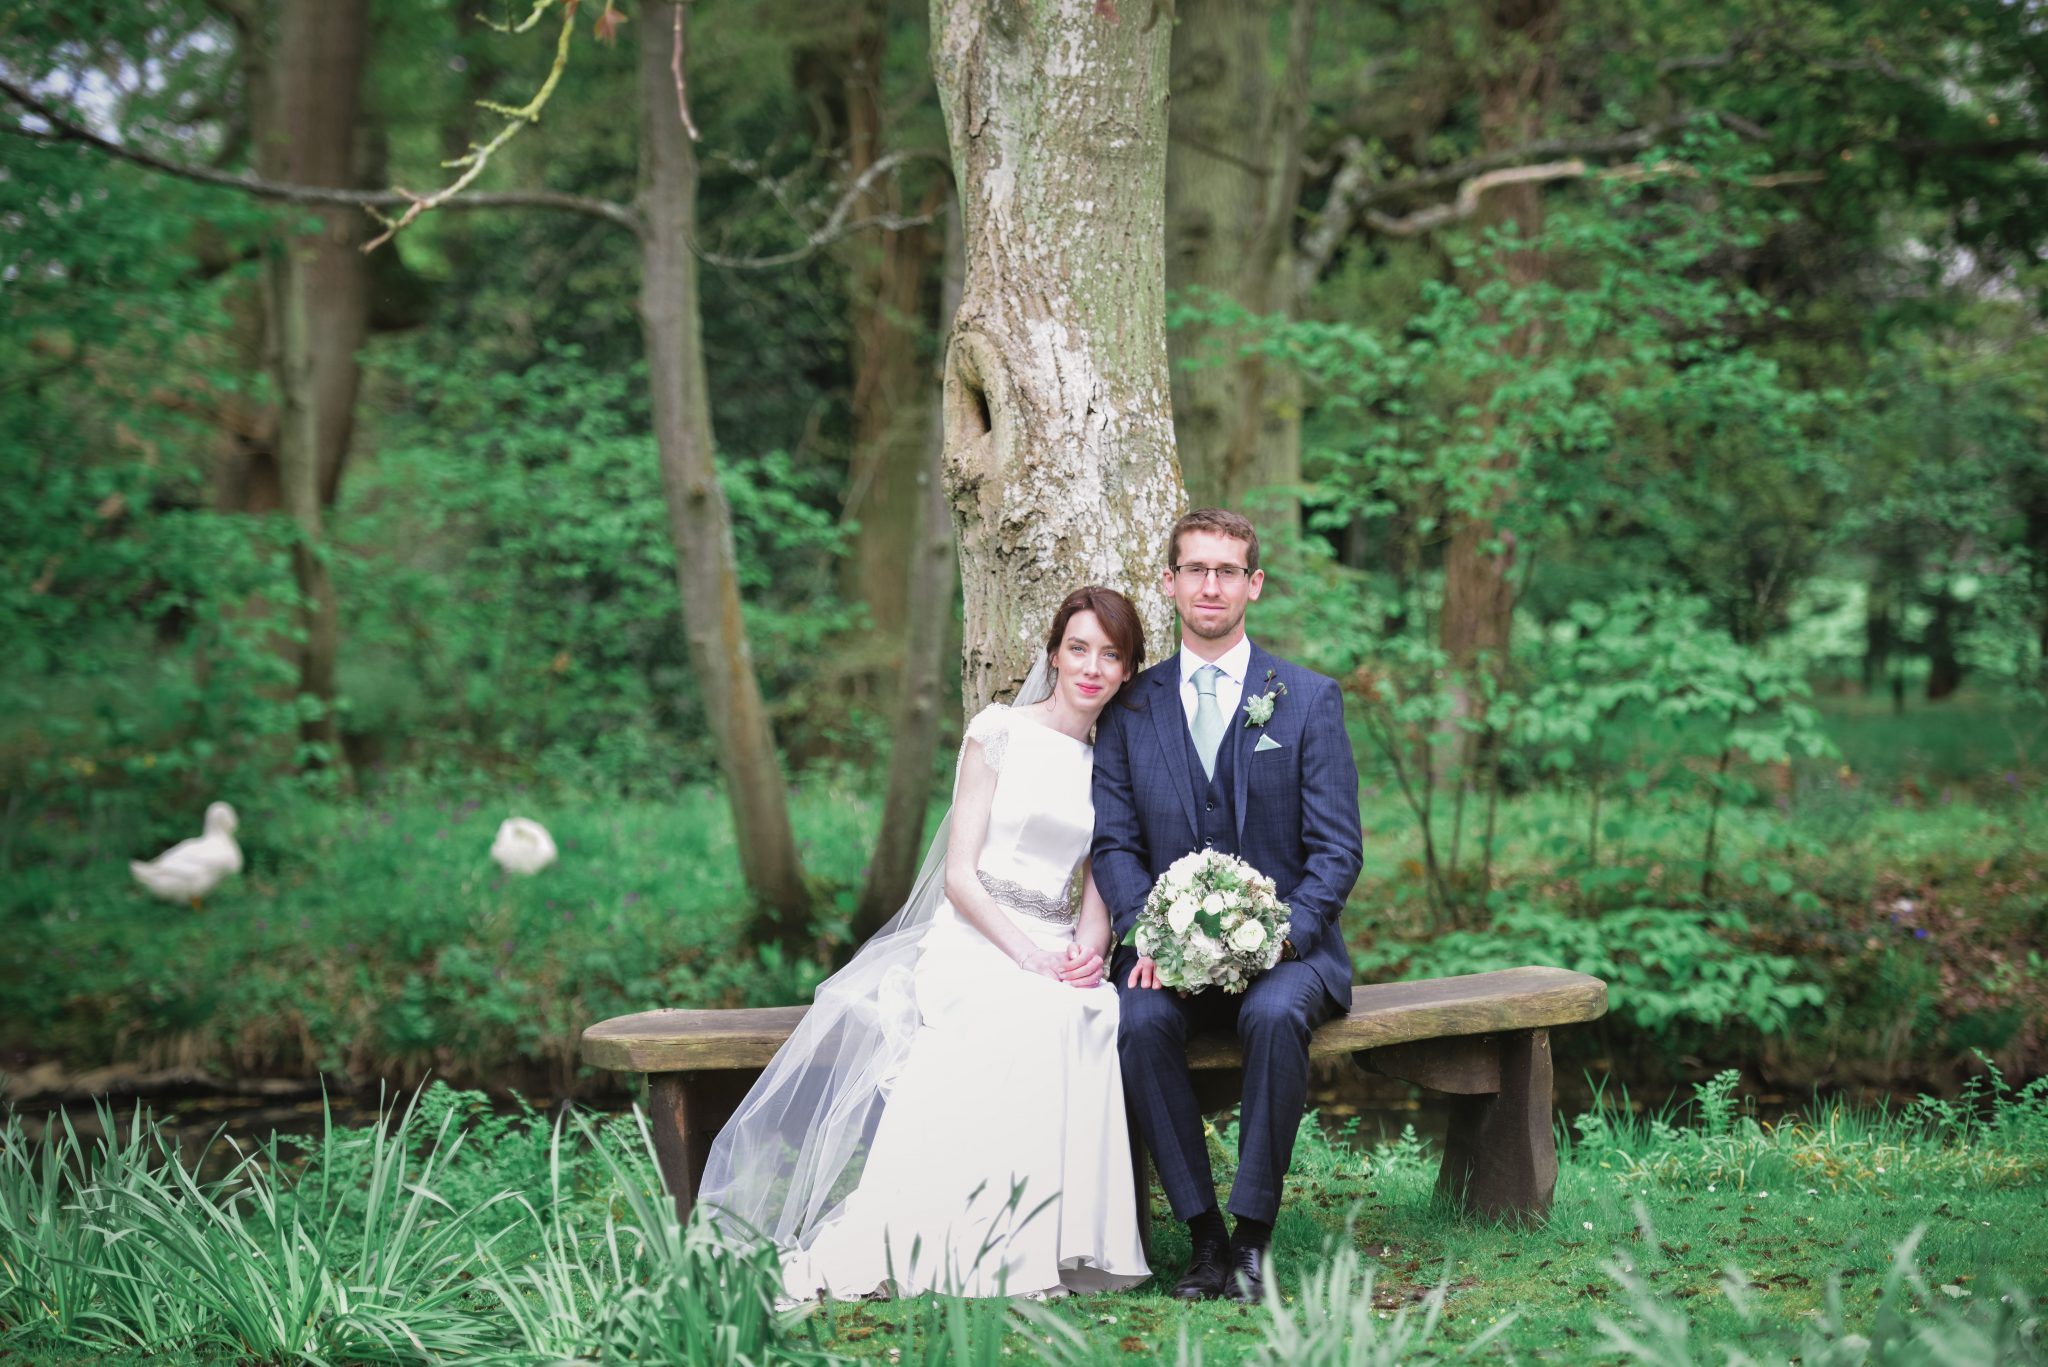 vintage wedding photography at broyle place sussex